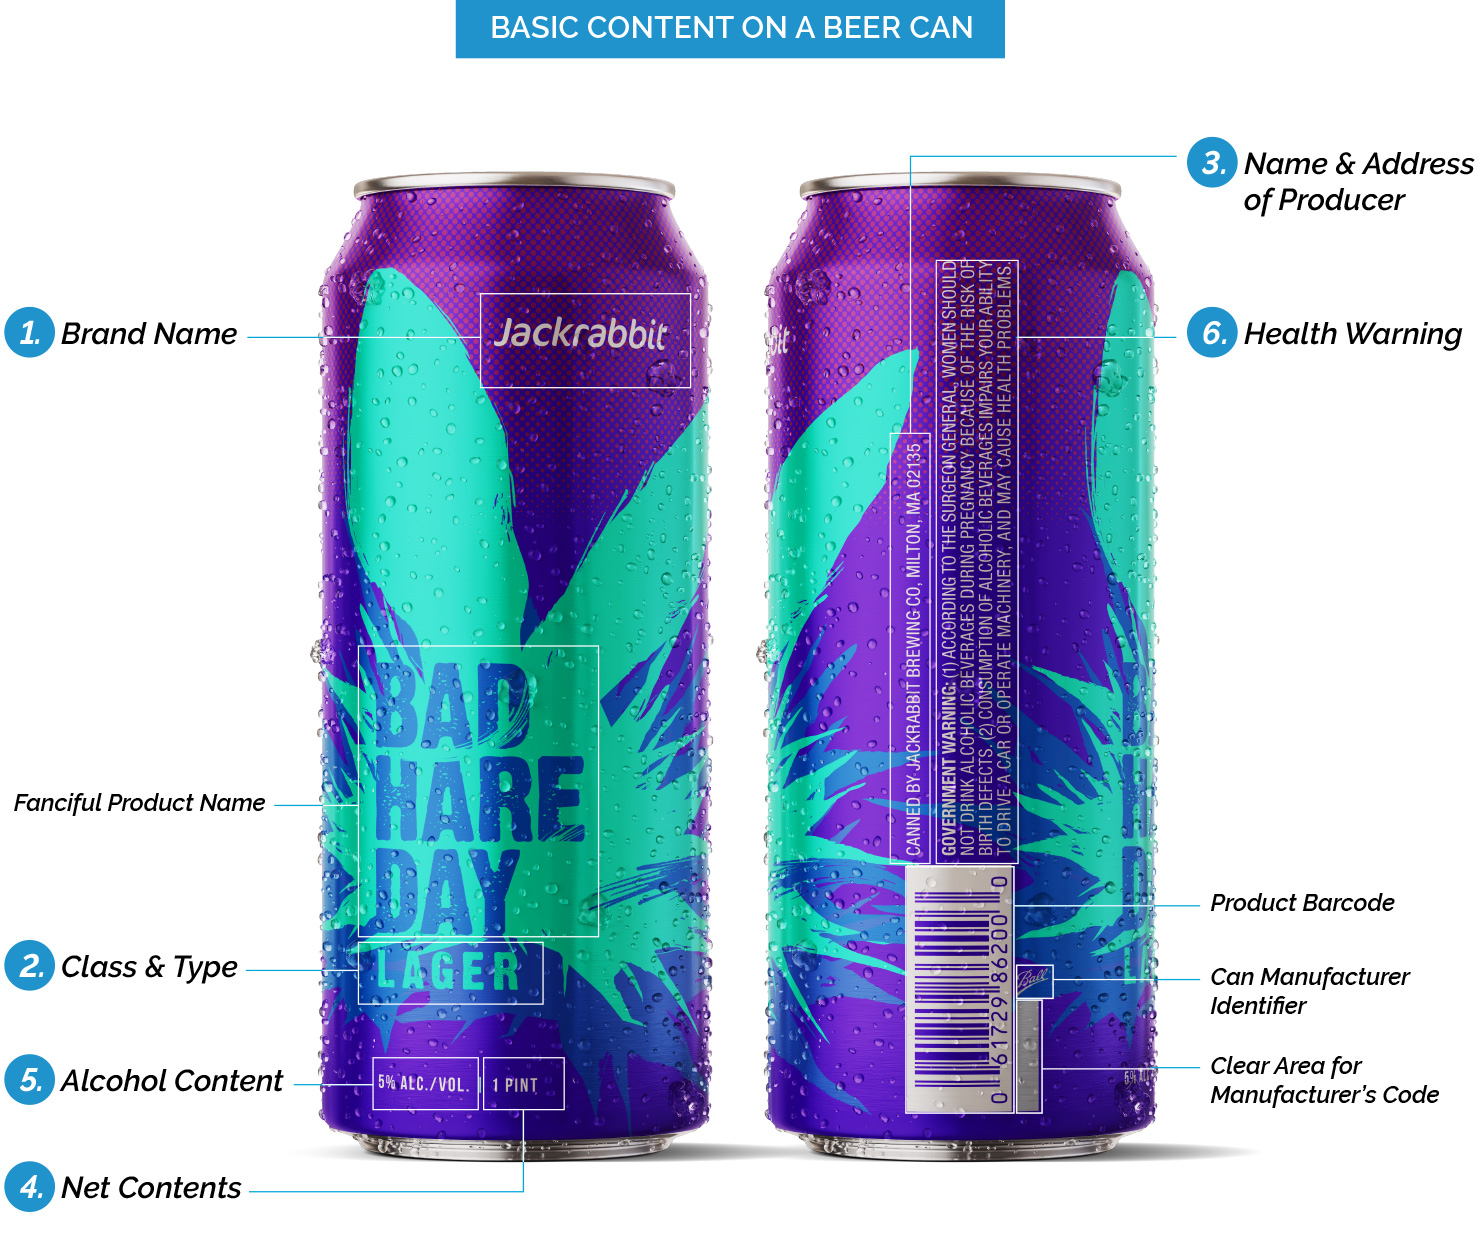 Design Guide to Beer Label Requirements: Diagram showing the Basic Content on a Beer Can using Bad Hard Day Lager, designed by Jackrabbit, as example